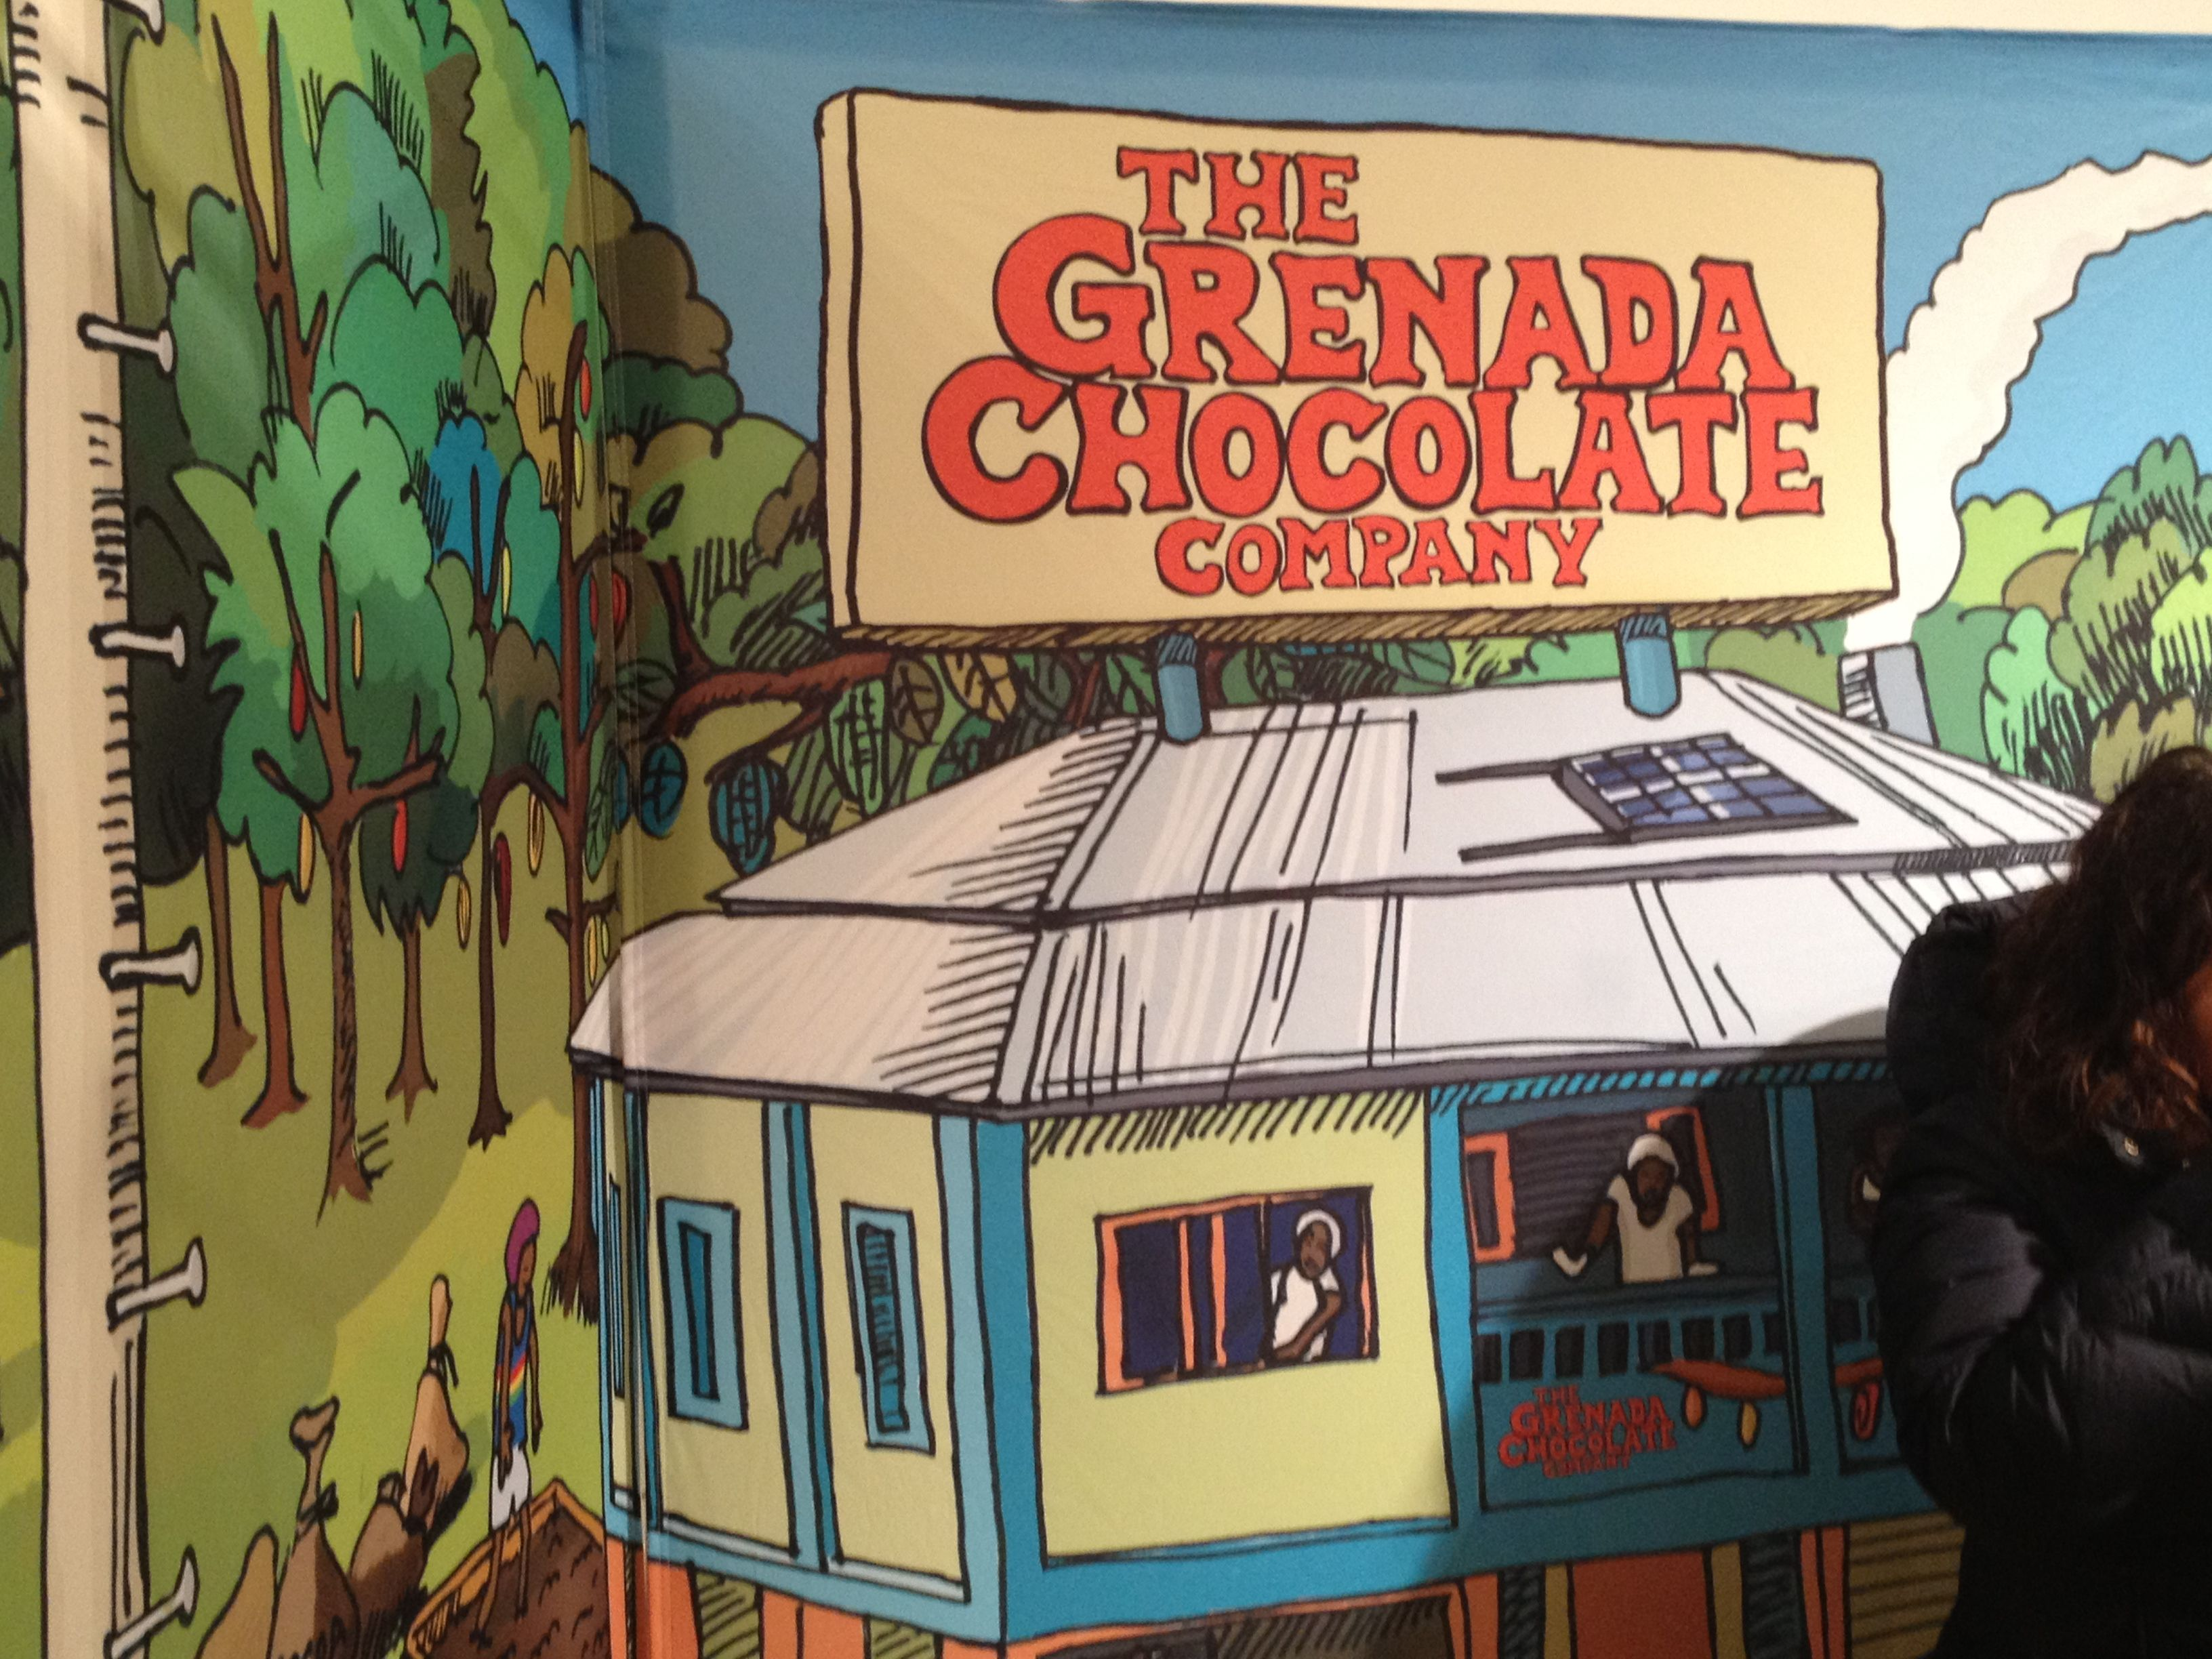 Chocolates from the Grenada Chocolate  Company at the NY Chocolate Show 2012 in NYC